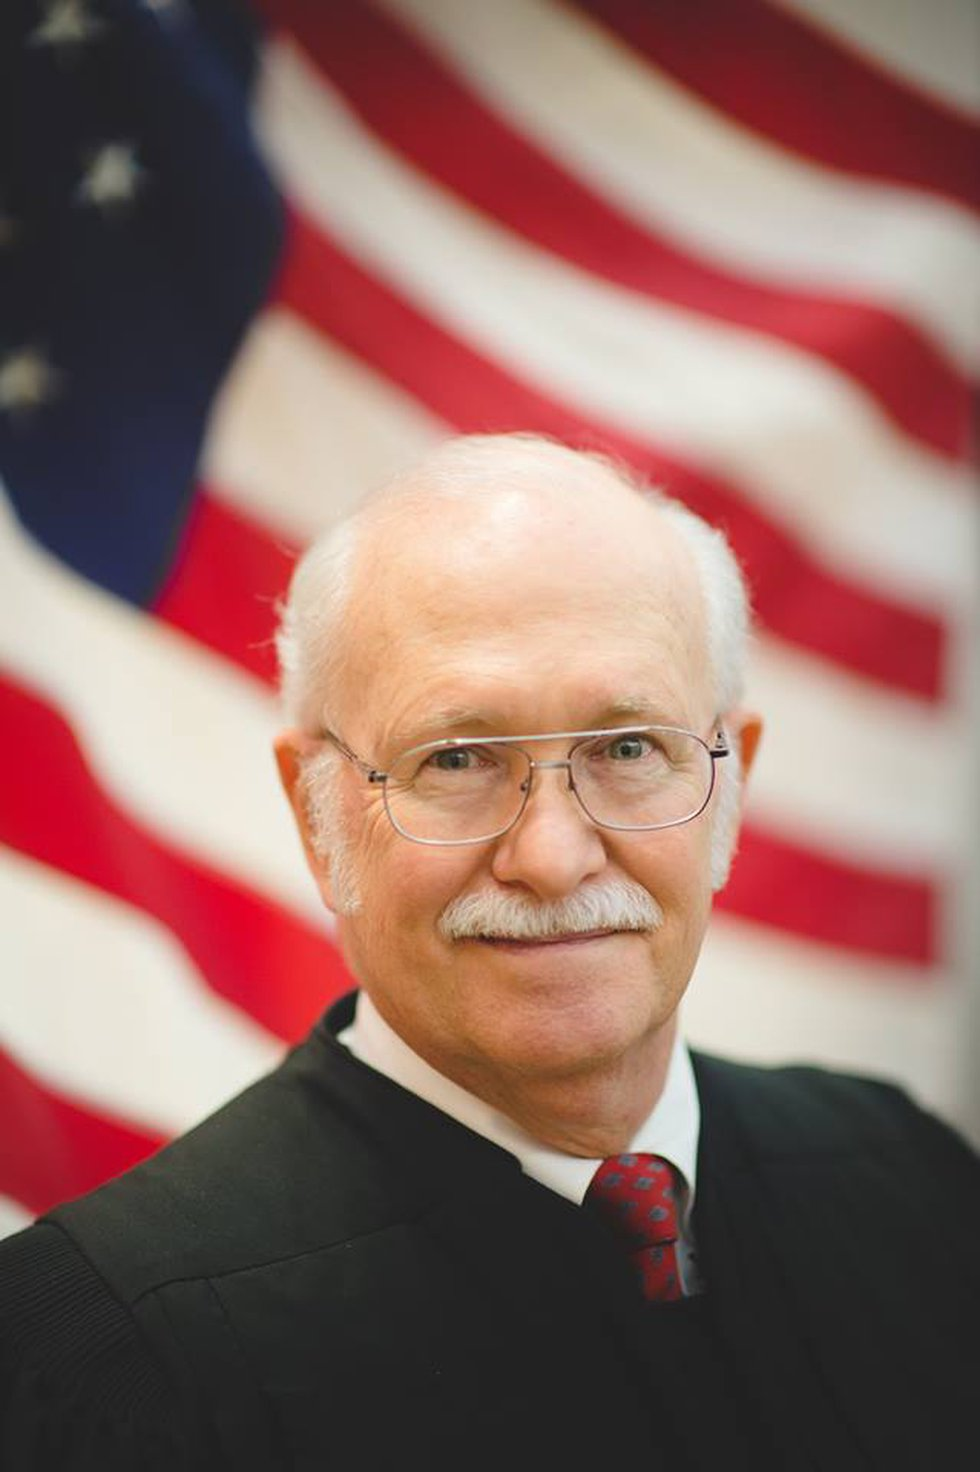 Judge Tom Parker is a Republican running for Alabama Chief Justice